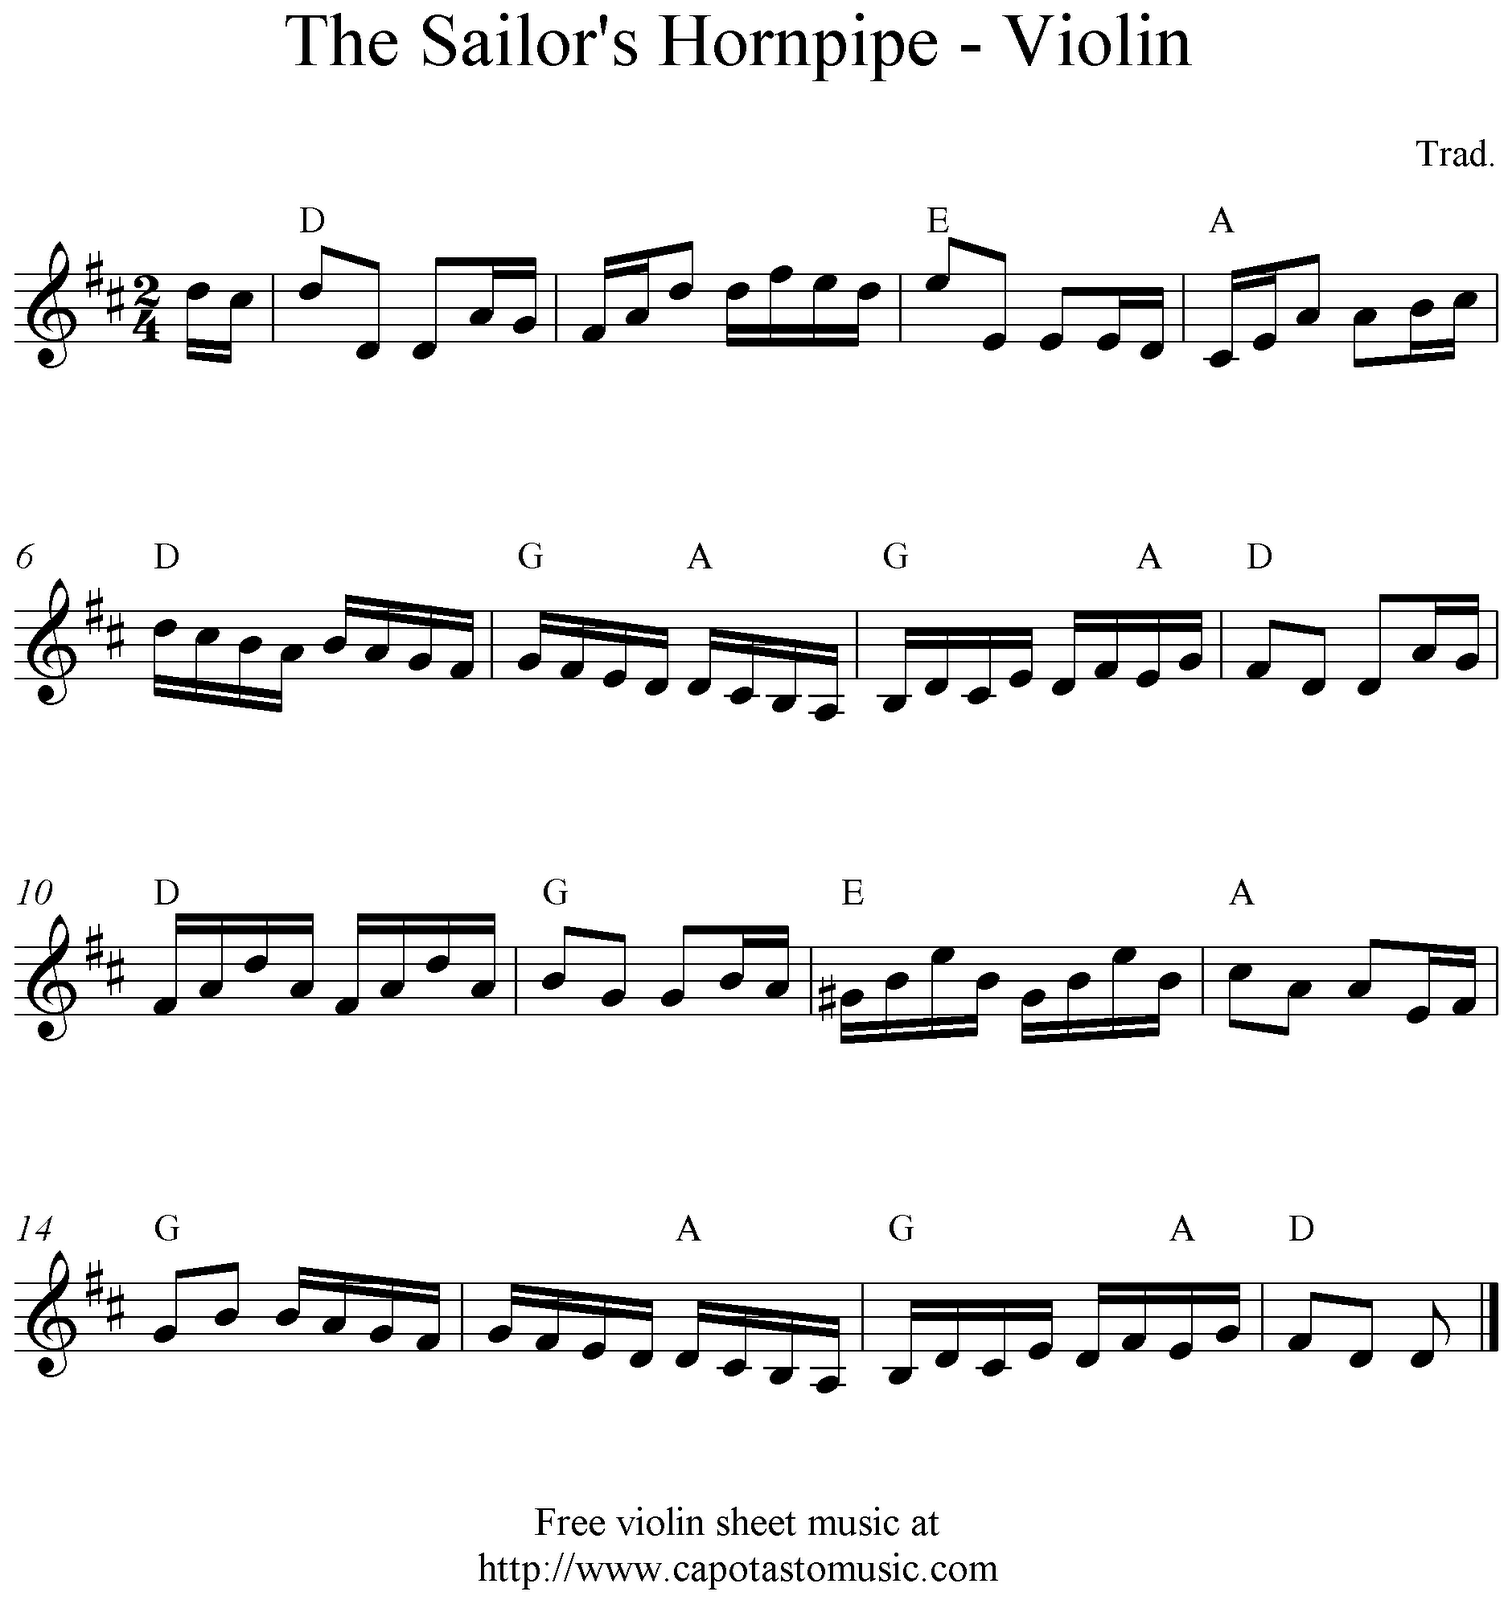 The Sailor's Hornpipe, Free Violin Sheet Mulsic Notes